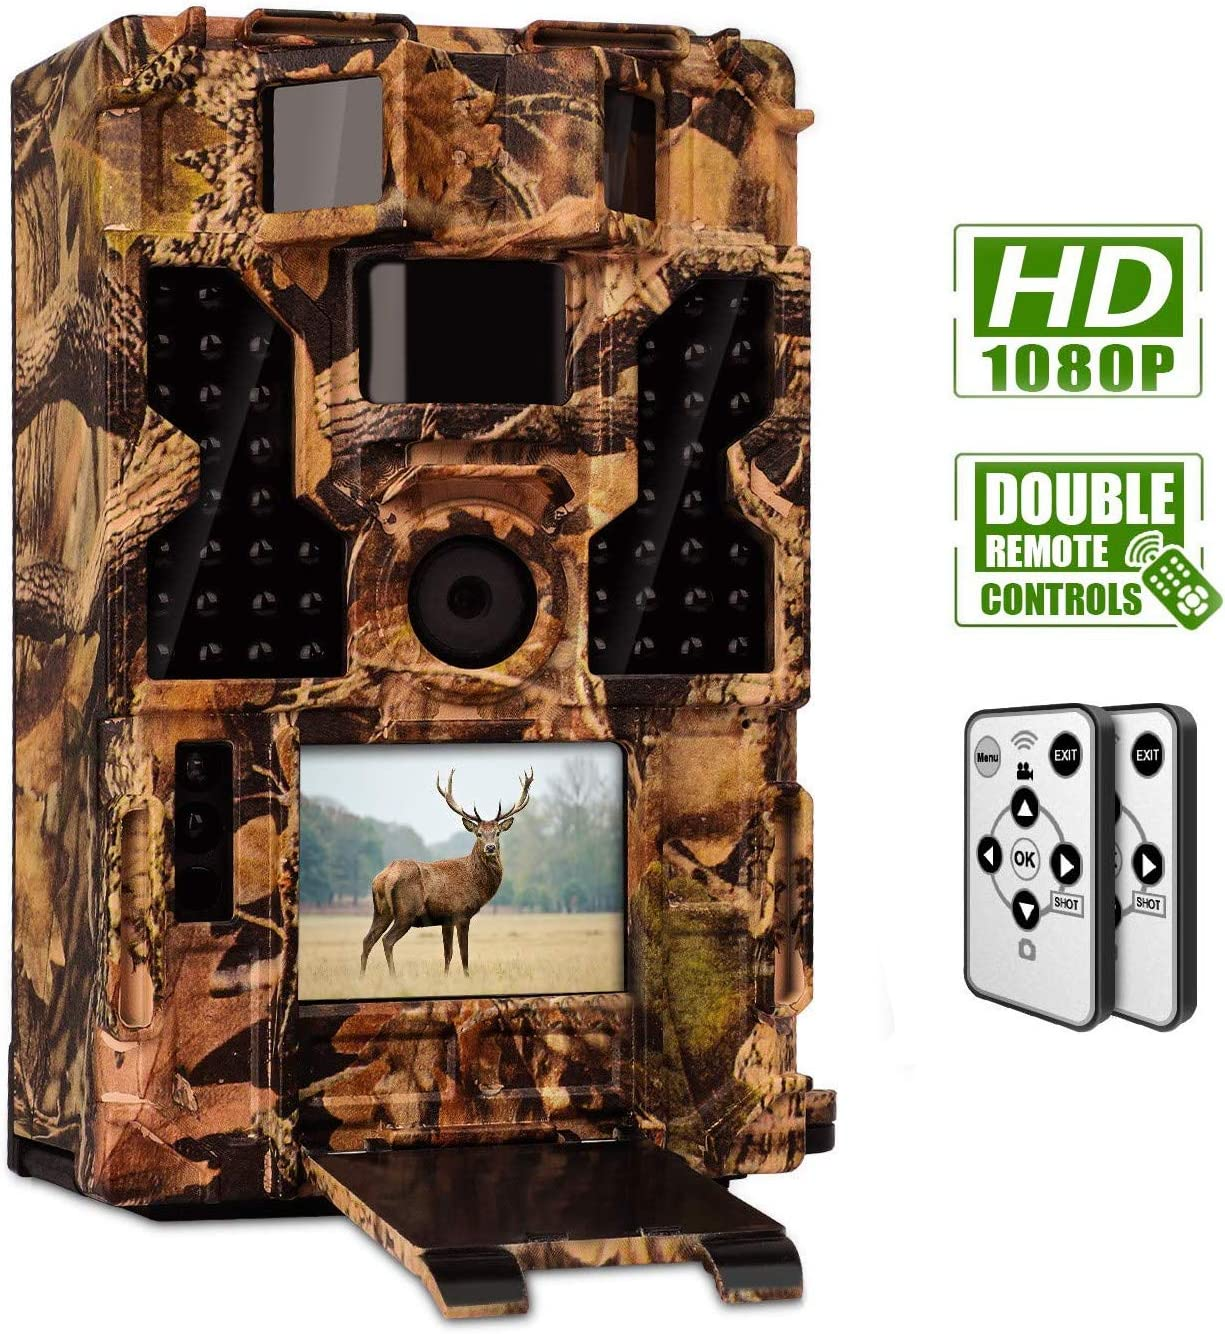 CLOBO Trail Camera- Waterproof 20MP 1080P Game Camera with Night Vision Motion Activated 0.2s Trigger Speed 3PIR 48IR LEDs 120 Detecting Range Cams Time Lapse for Wildlife Monitoring Home Security